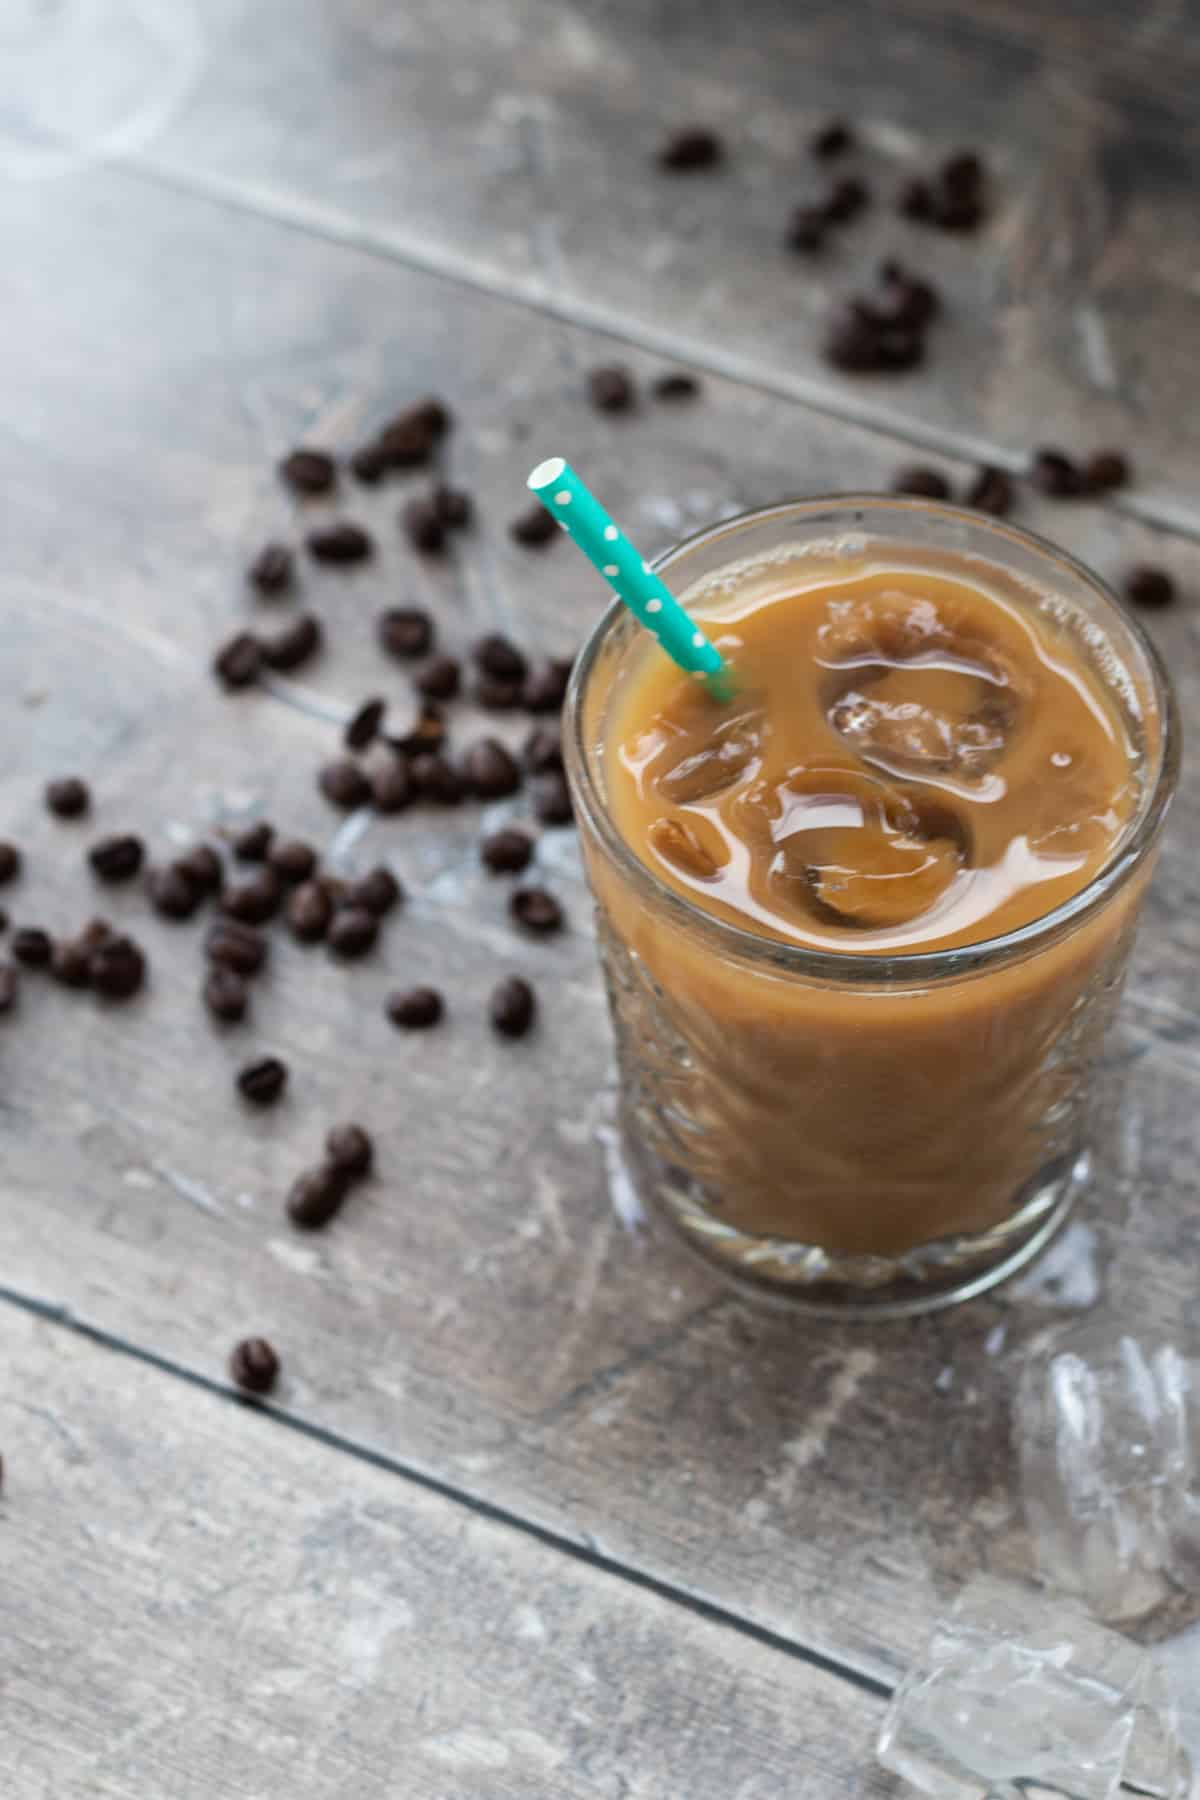 vanilla iced latte with straw on a wooden surface sprinkled with coffee beans